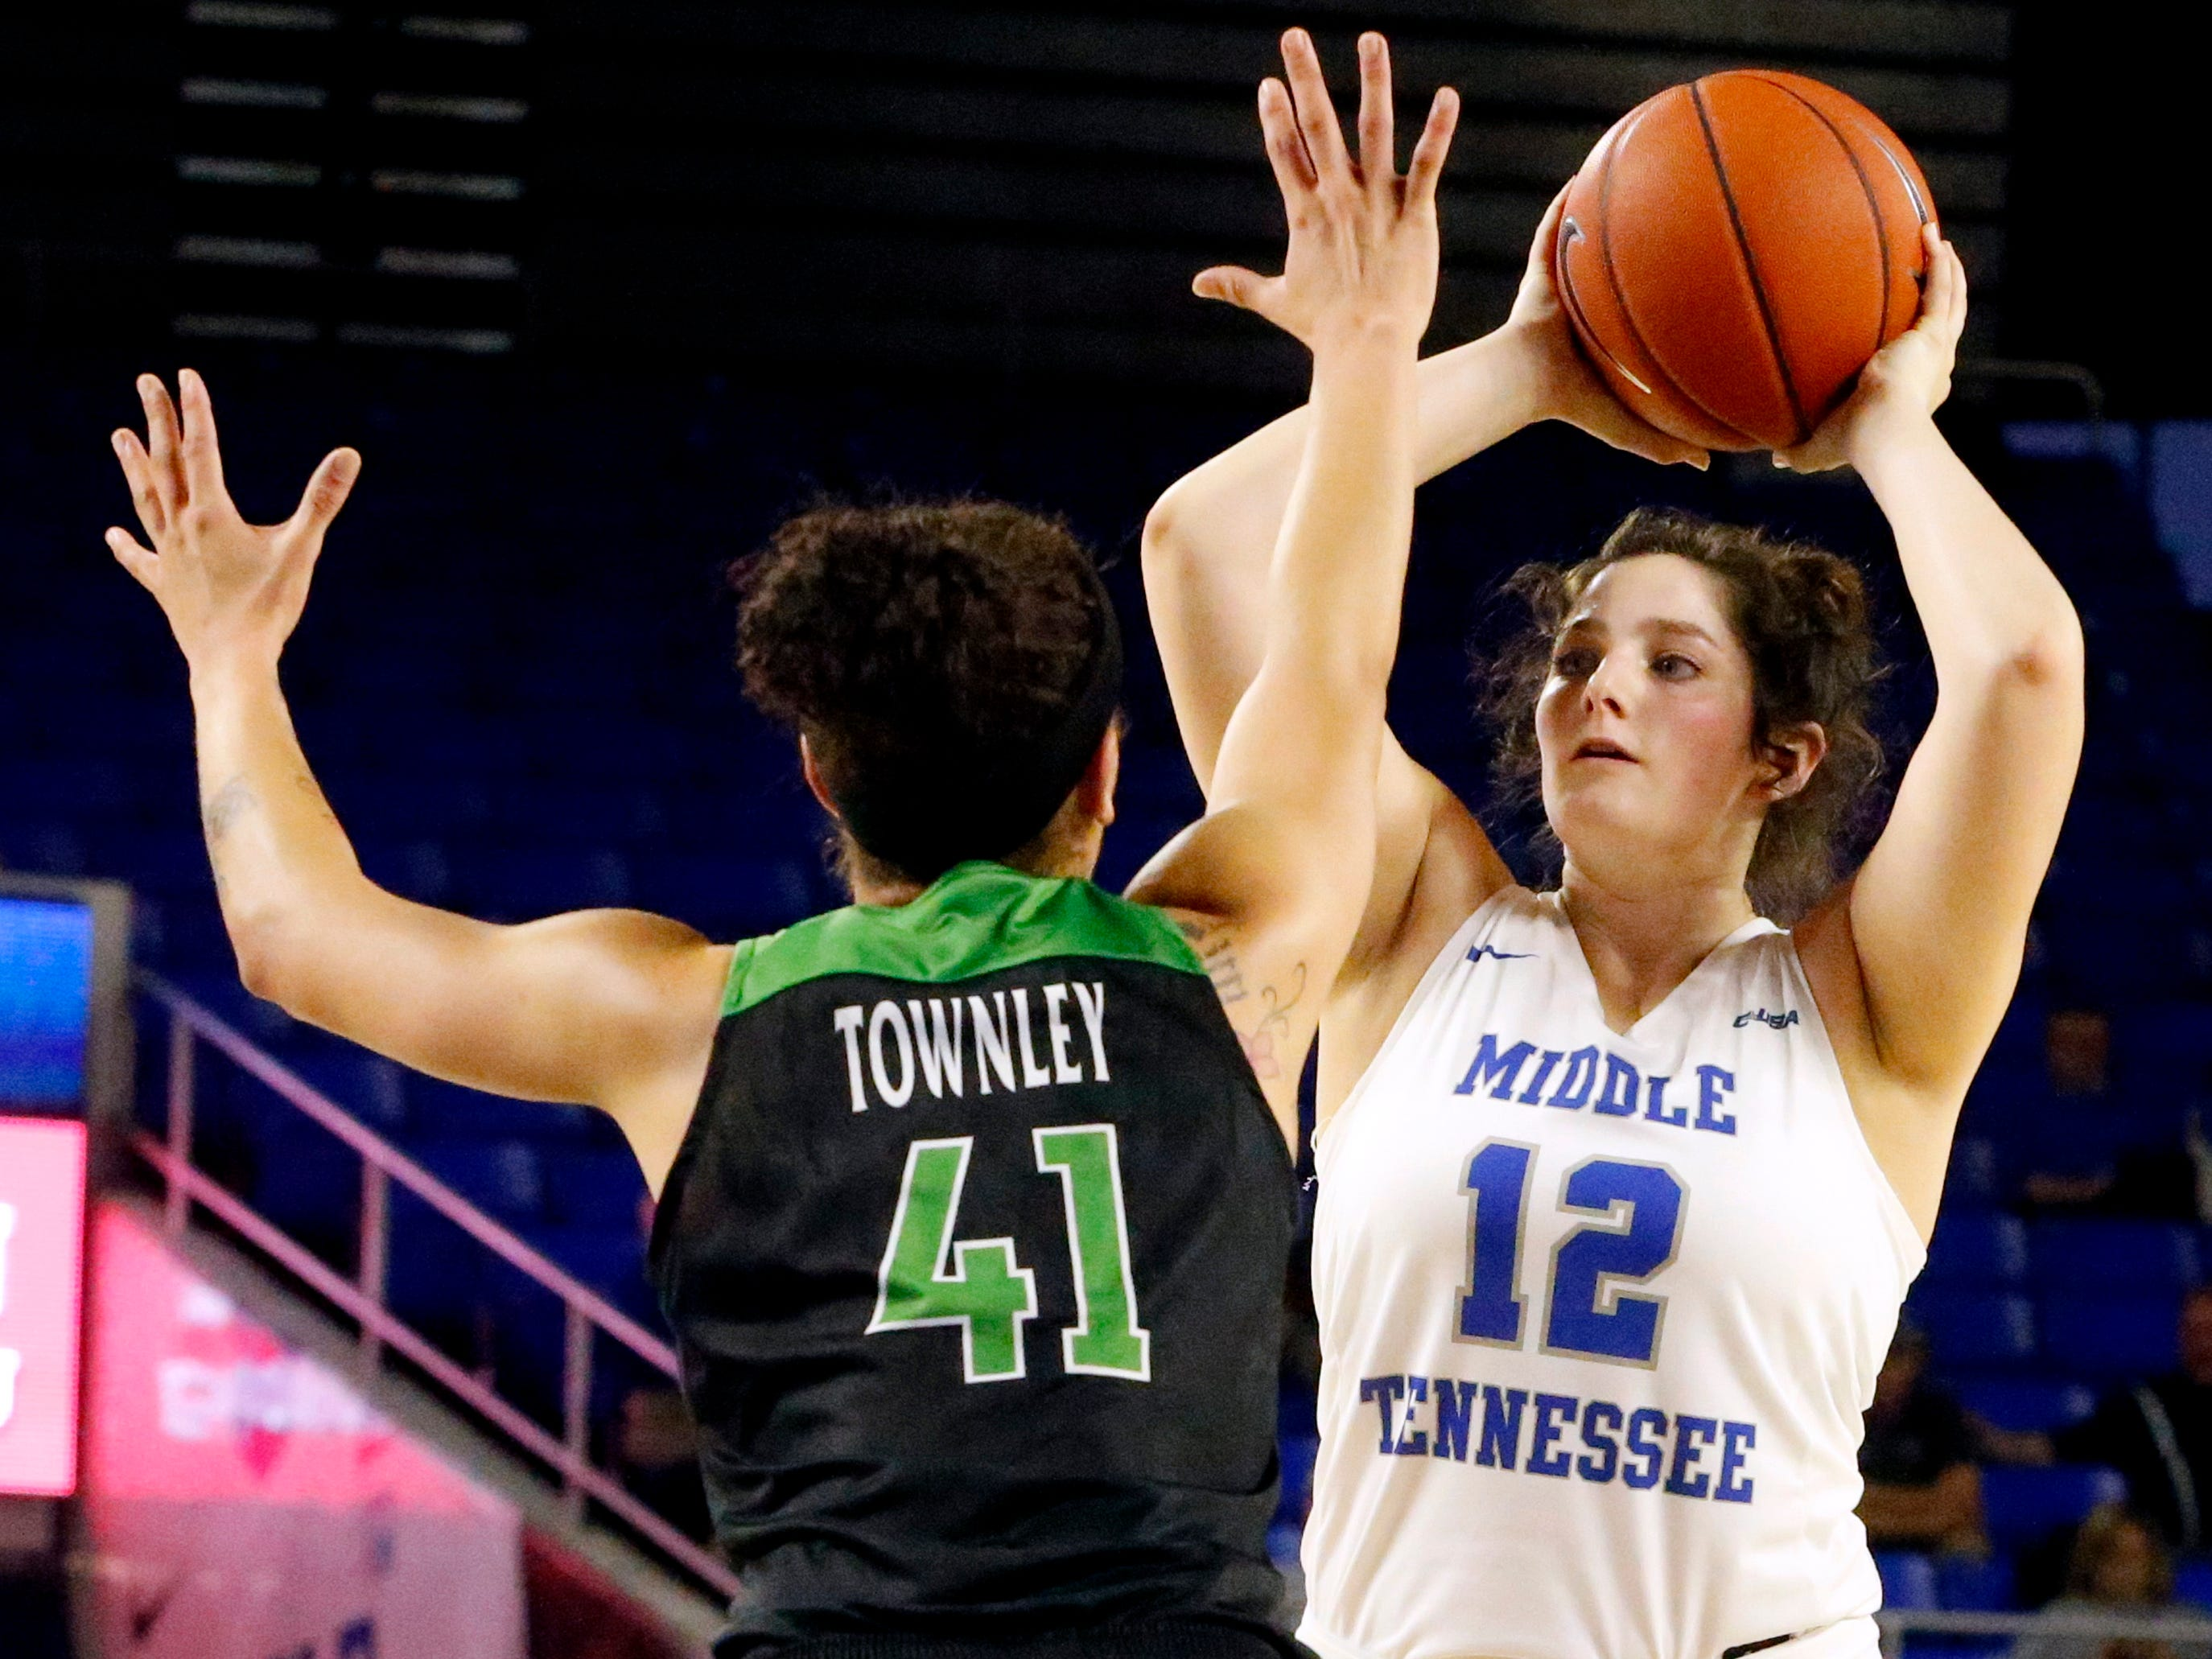 MTSU's guard Jess Louro (12) looks for a player to pass to as North Texas' forward Madison Townley (41) guards her on Saturday Jan. 26, 2019.